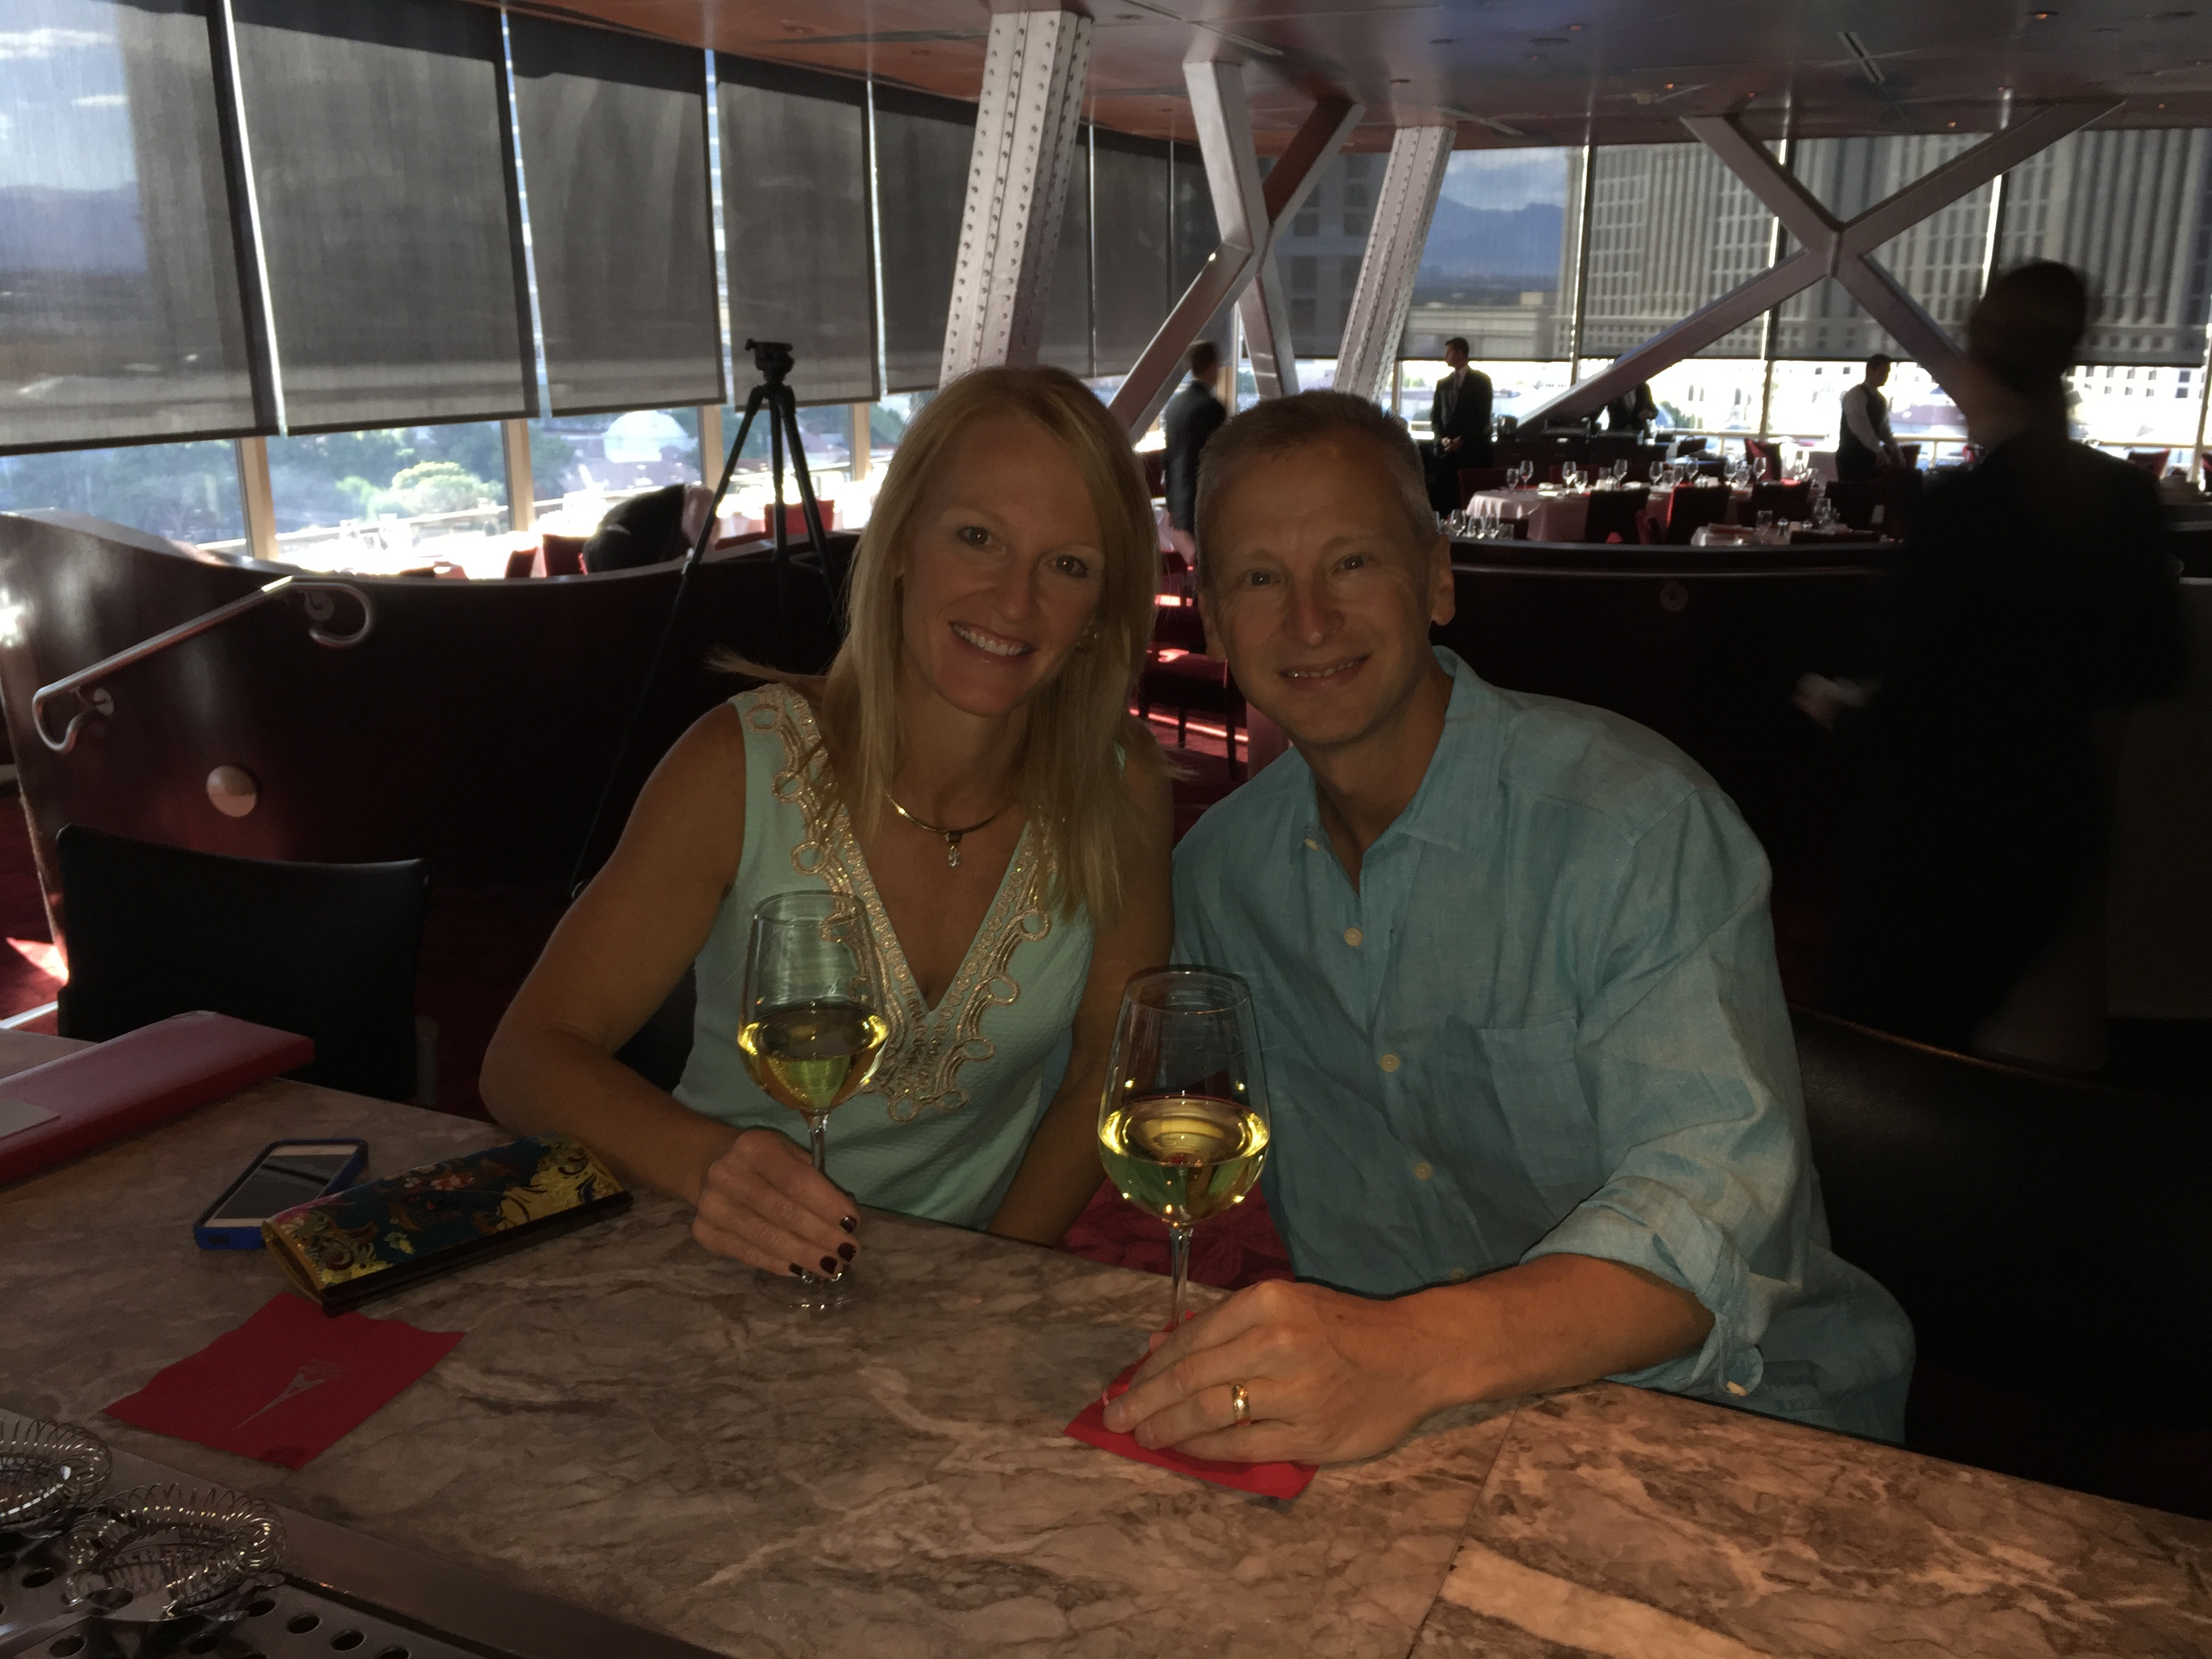 Celebrating our 24th Anniversary at the Eiffel Tower Restaurant